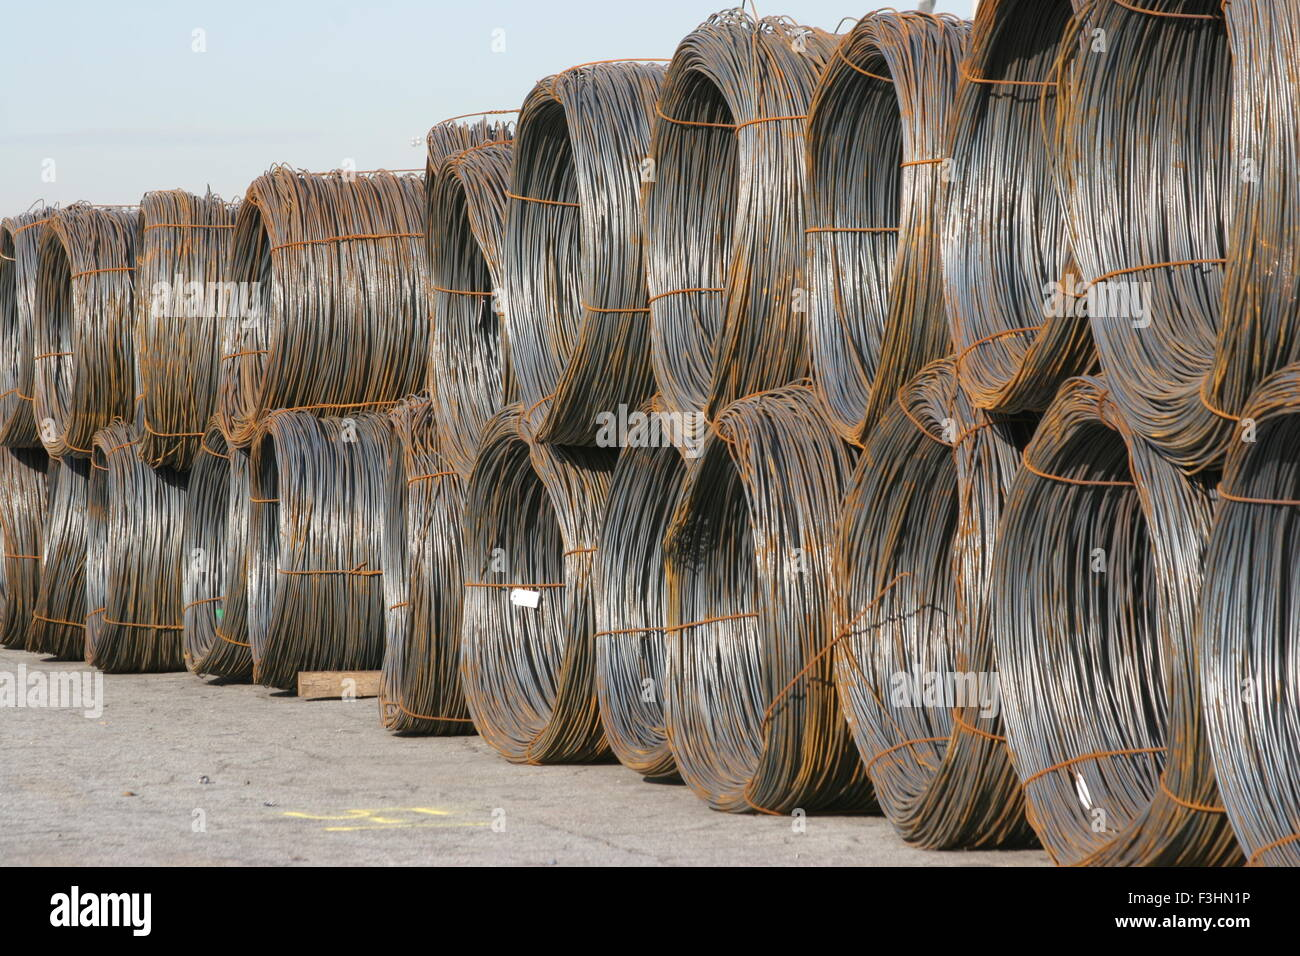 steel coils imported at port - Stock Image